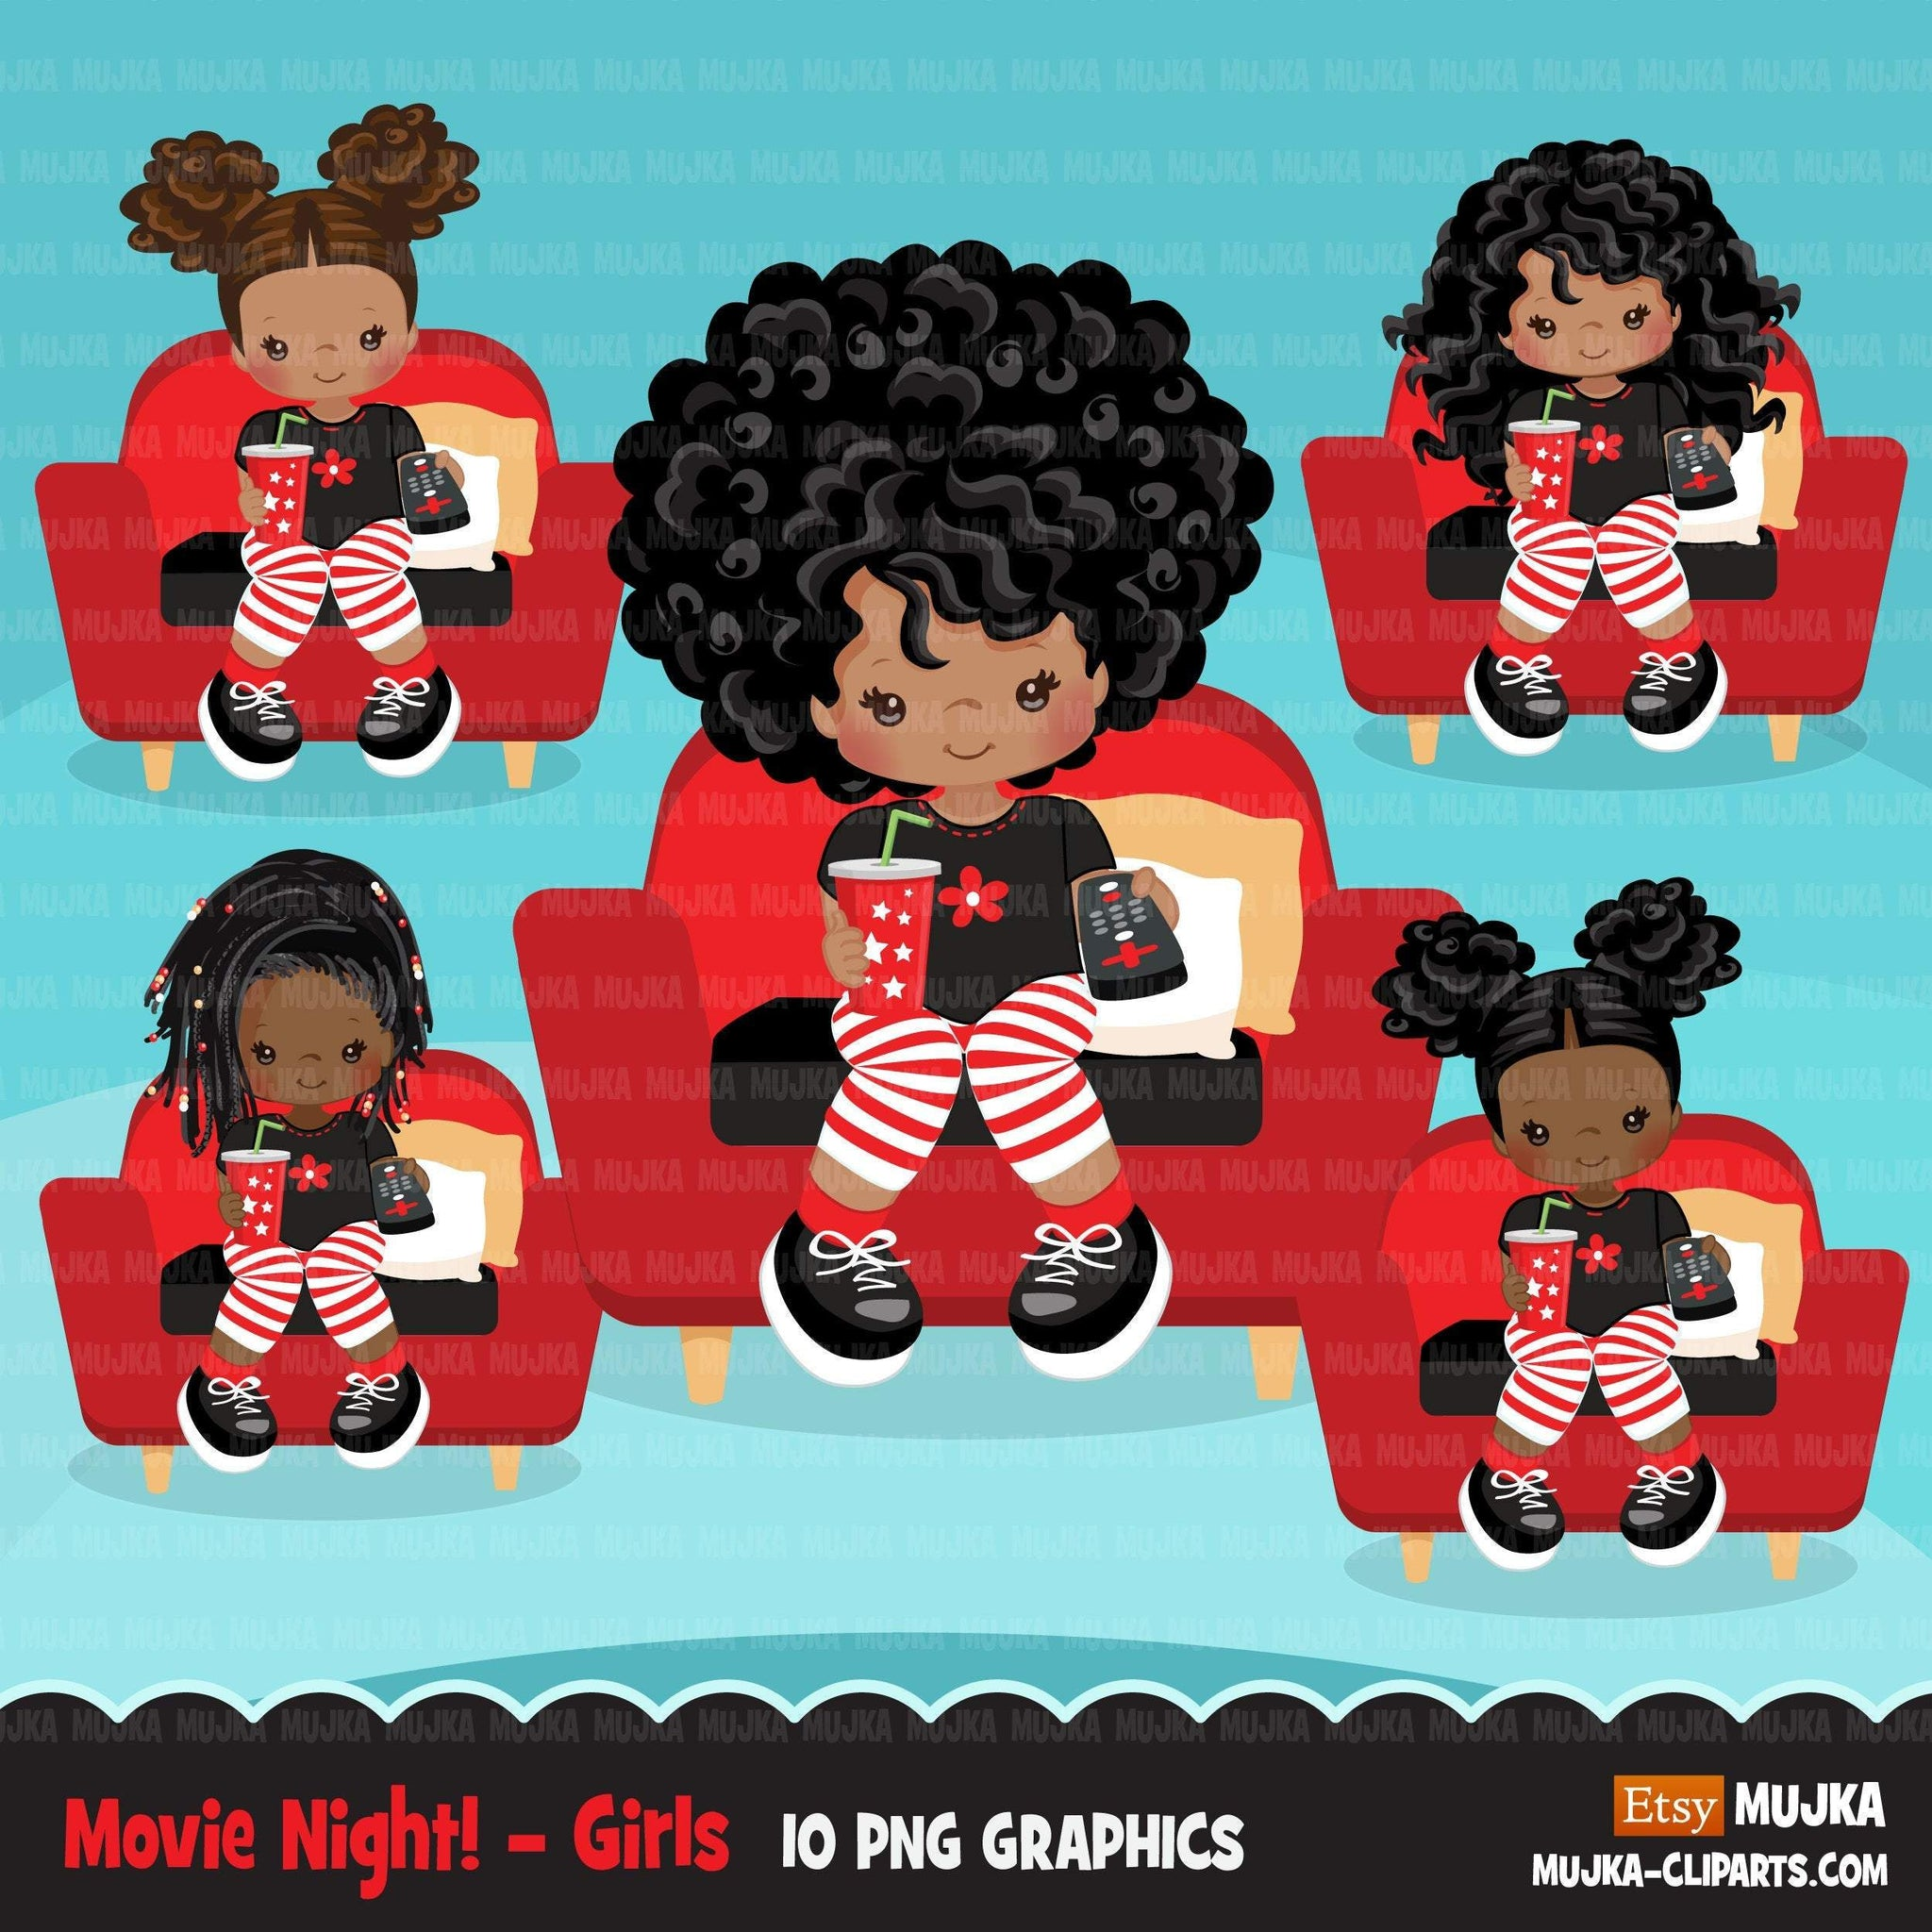 Movie night Clipart, movie birthday party, black girls graphics, TV remote, popcorn, sleepover party Png clip art